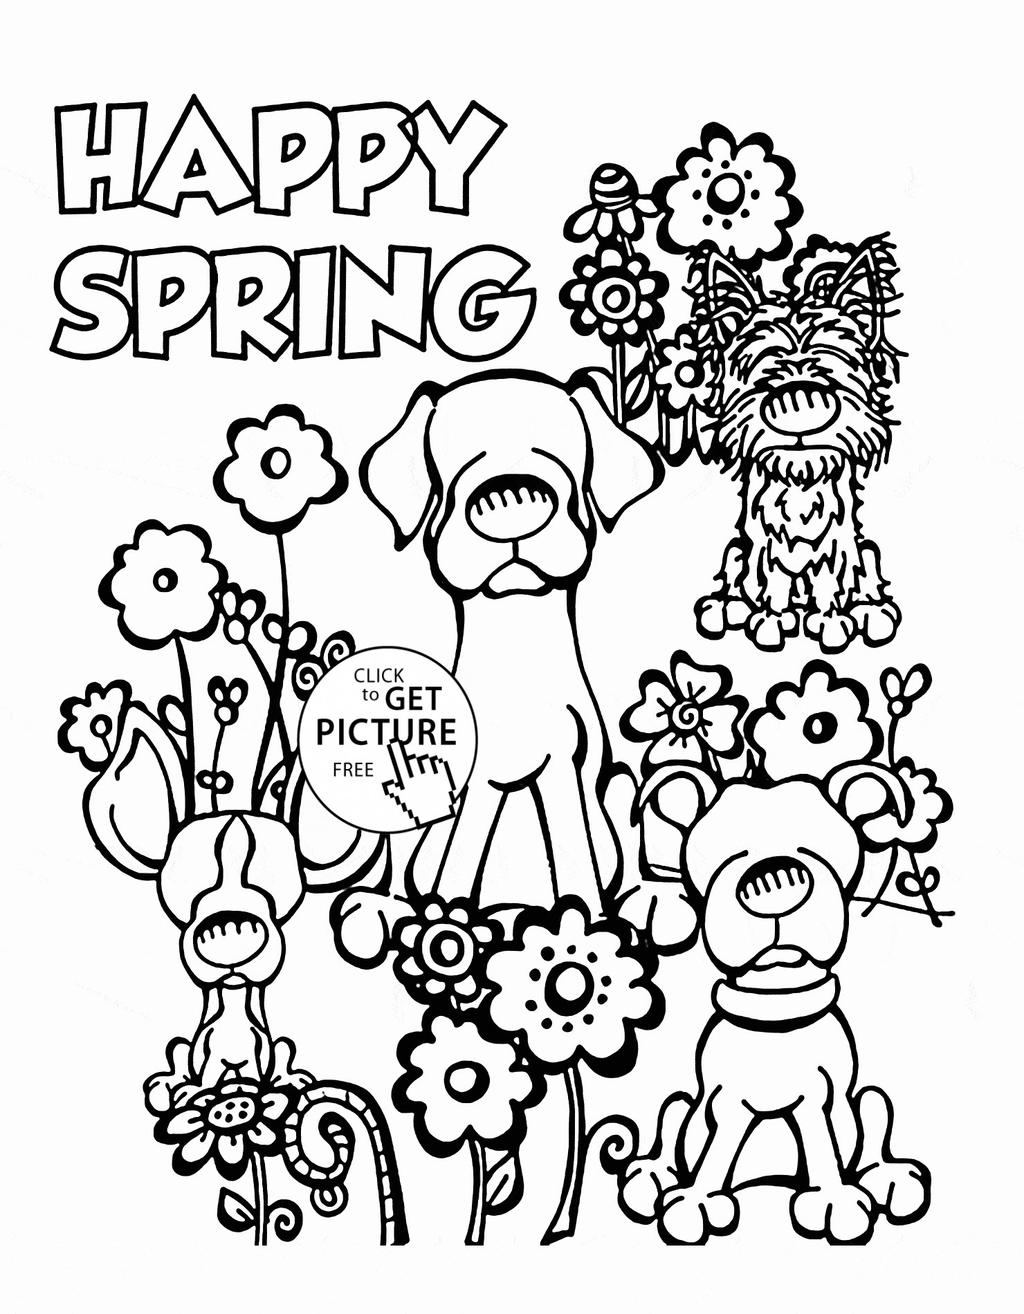 Seasons Coloring Pages Dogs And Free Printable Coloring Pages